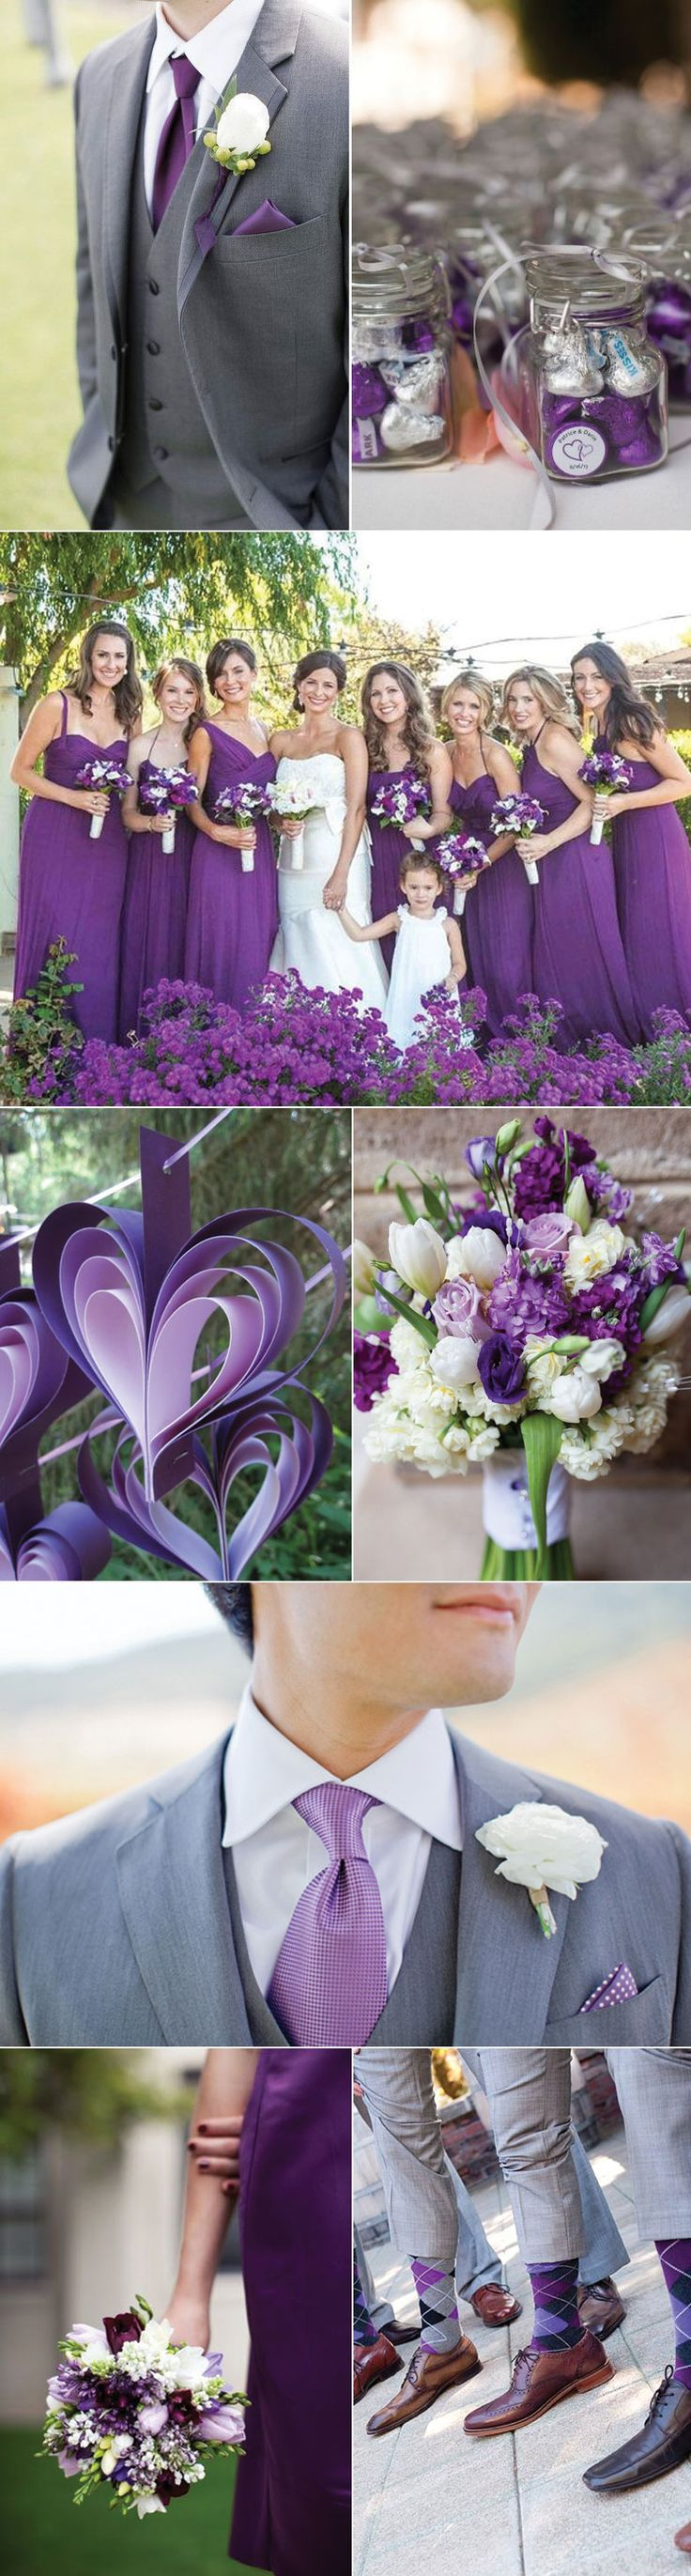 Best 25+ Purple wedding dress colors ideas on Pinterest | Purple wedding  dress colours, Purple wedding gown colors and Plum dress for wedding